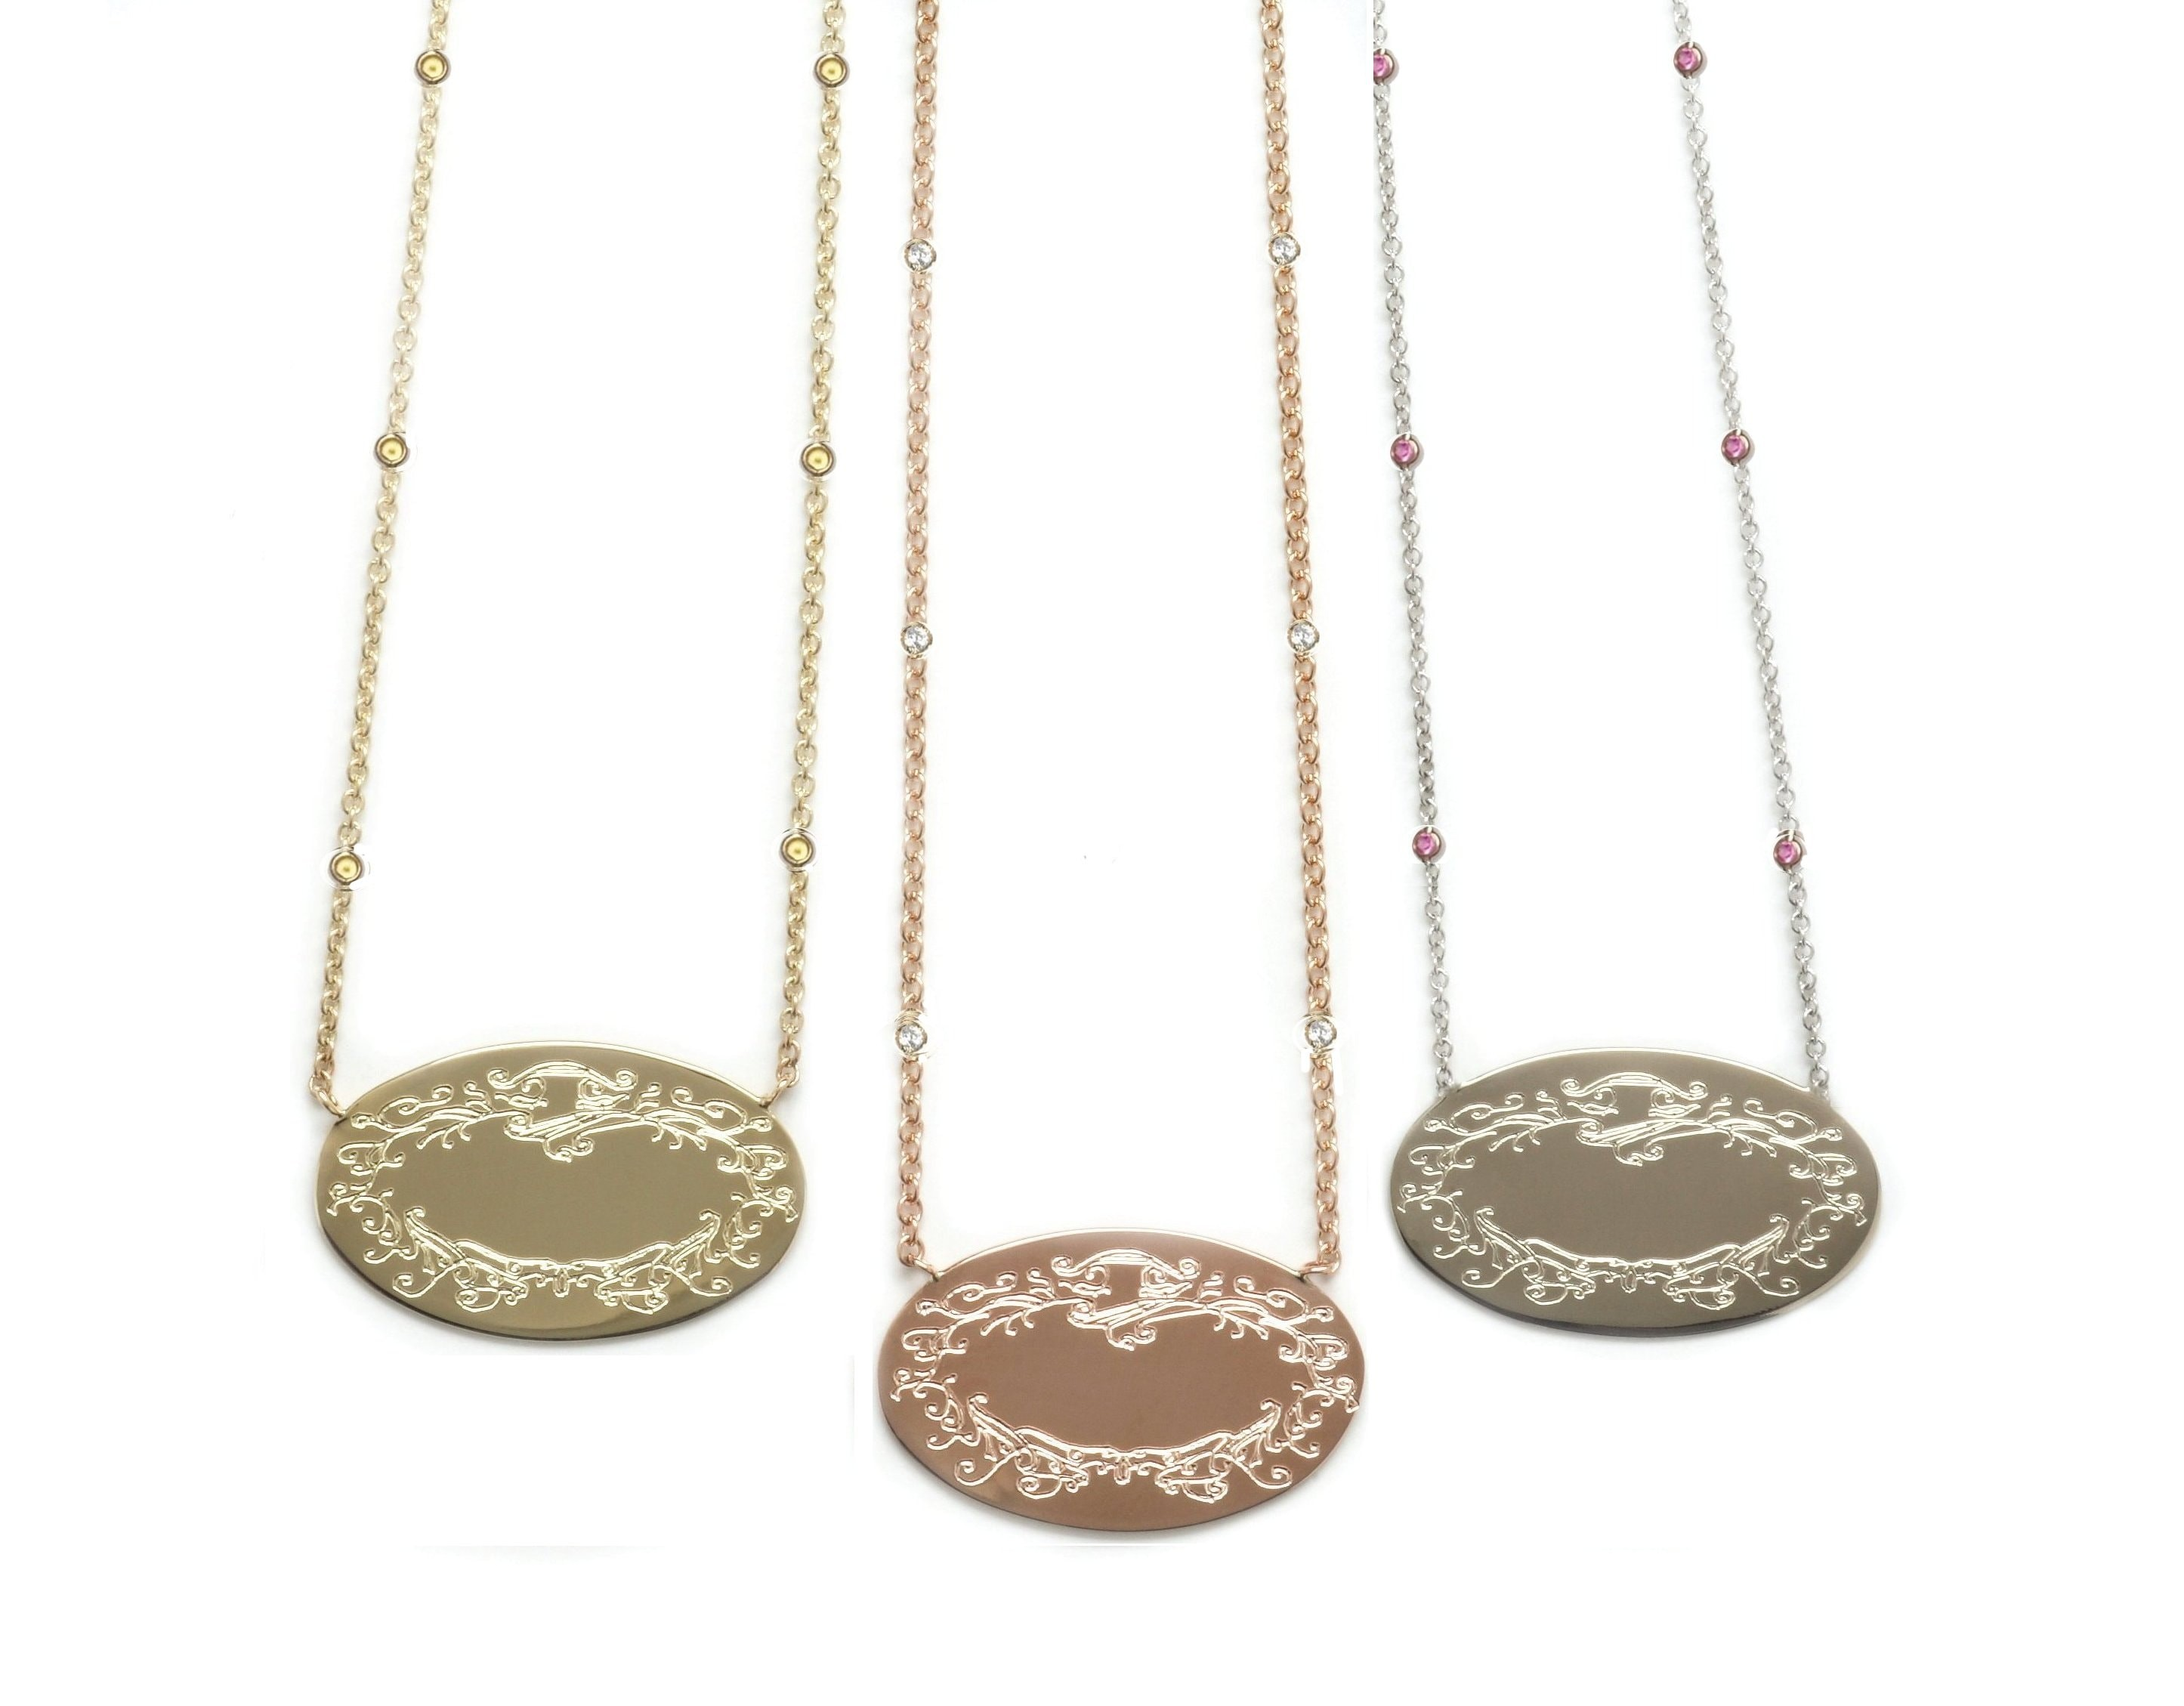 Small Signature Pendants on Precious Stone Chains